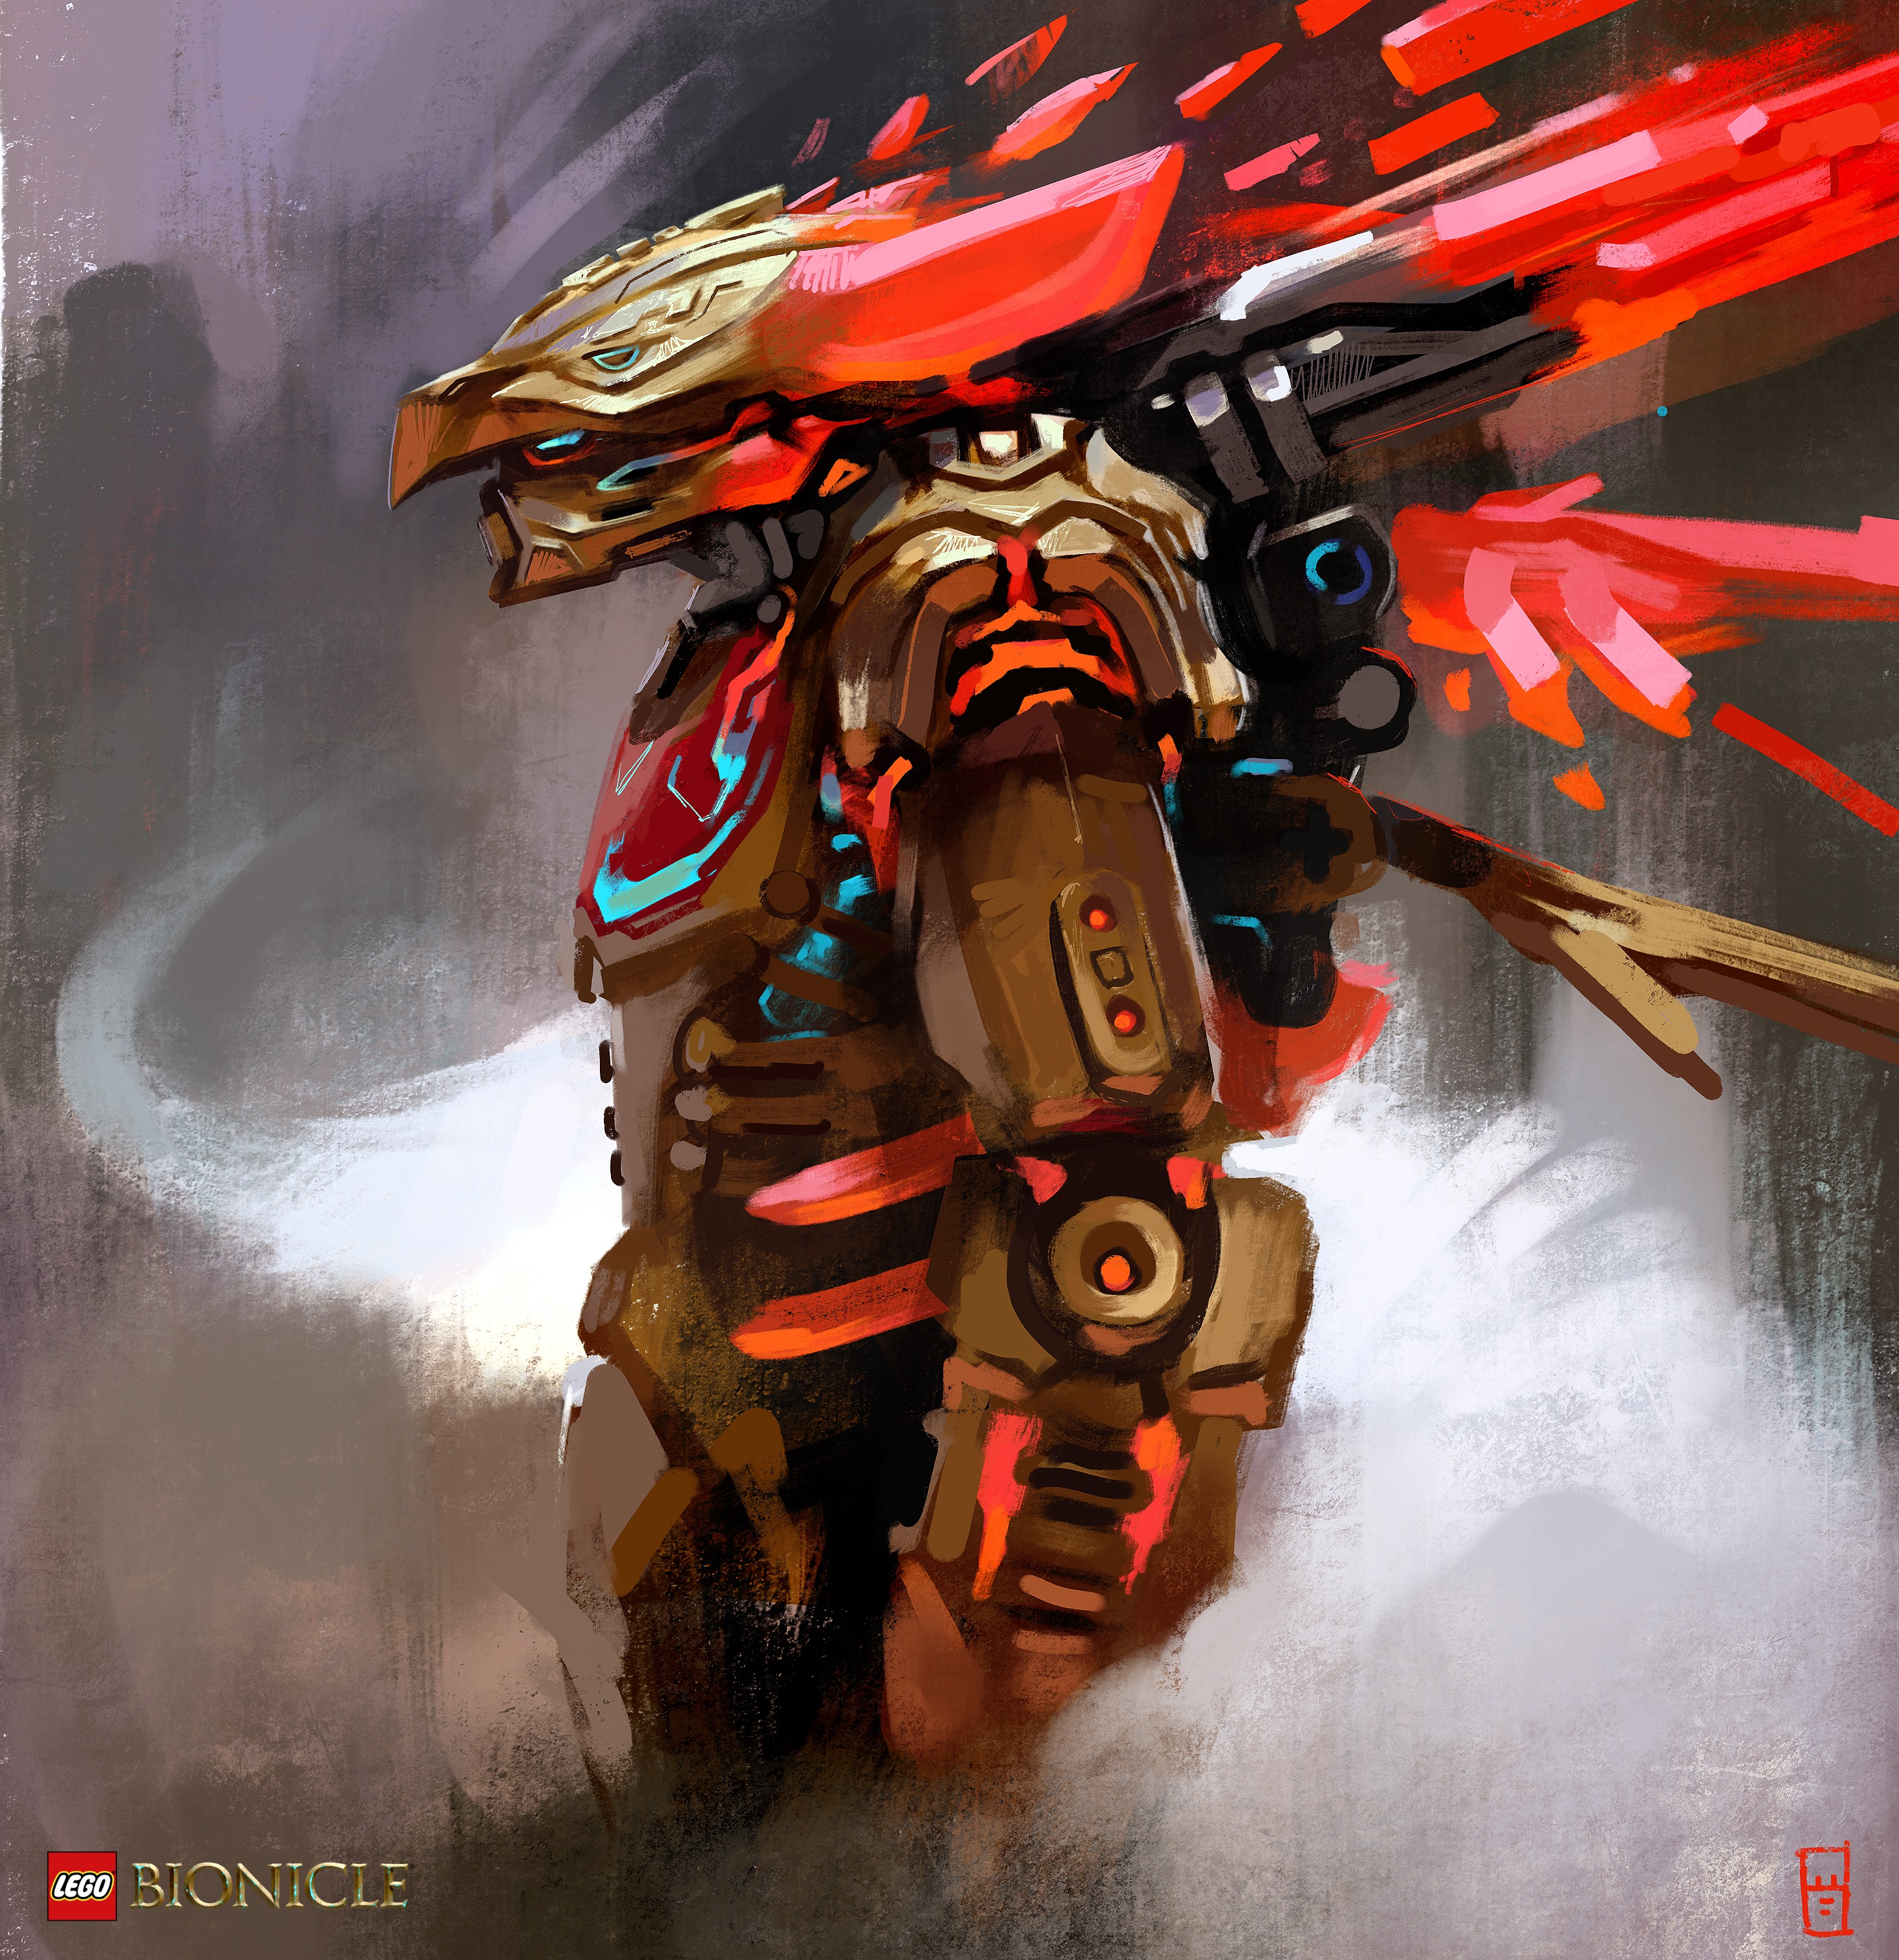 Bionicle Wallpaper 97 images in Collection Page 1 2906x3000